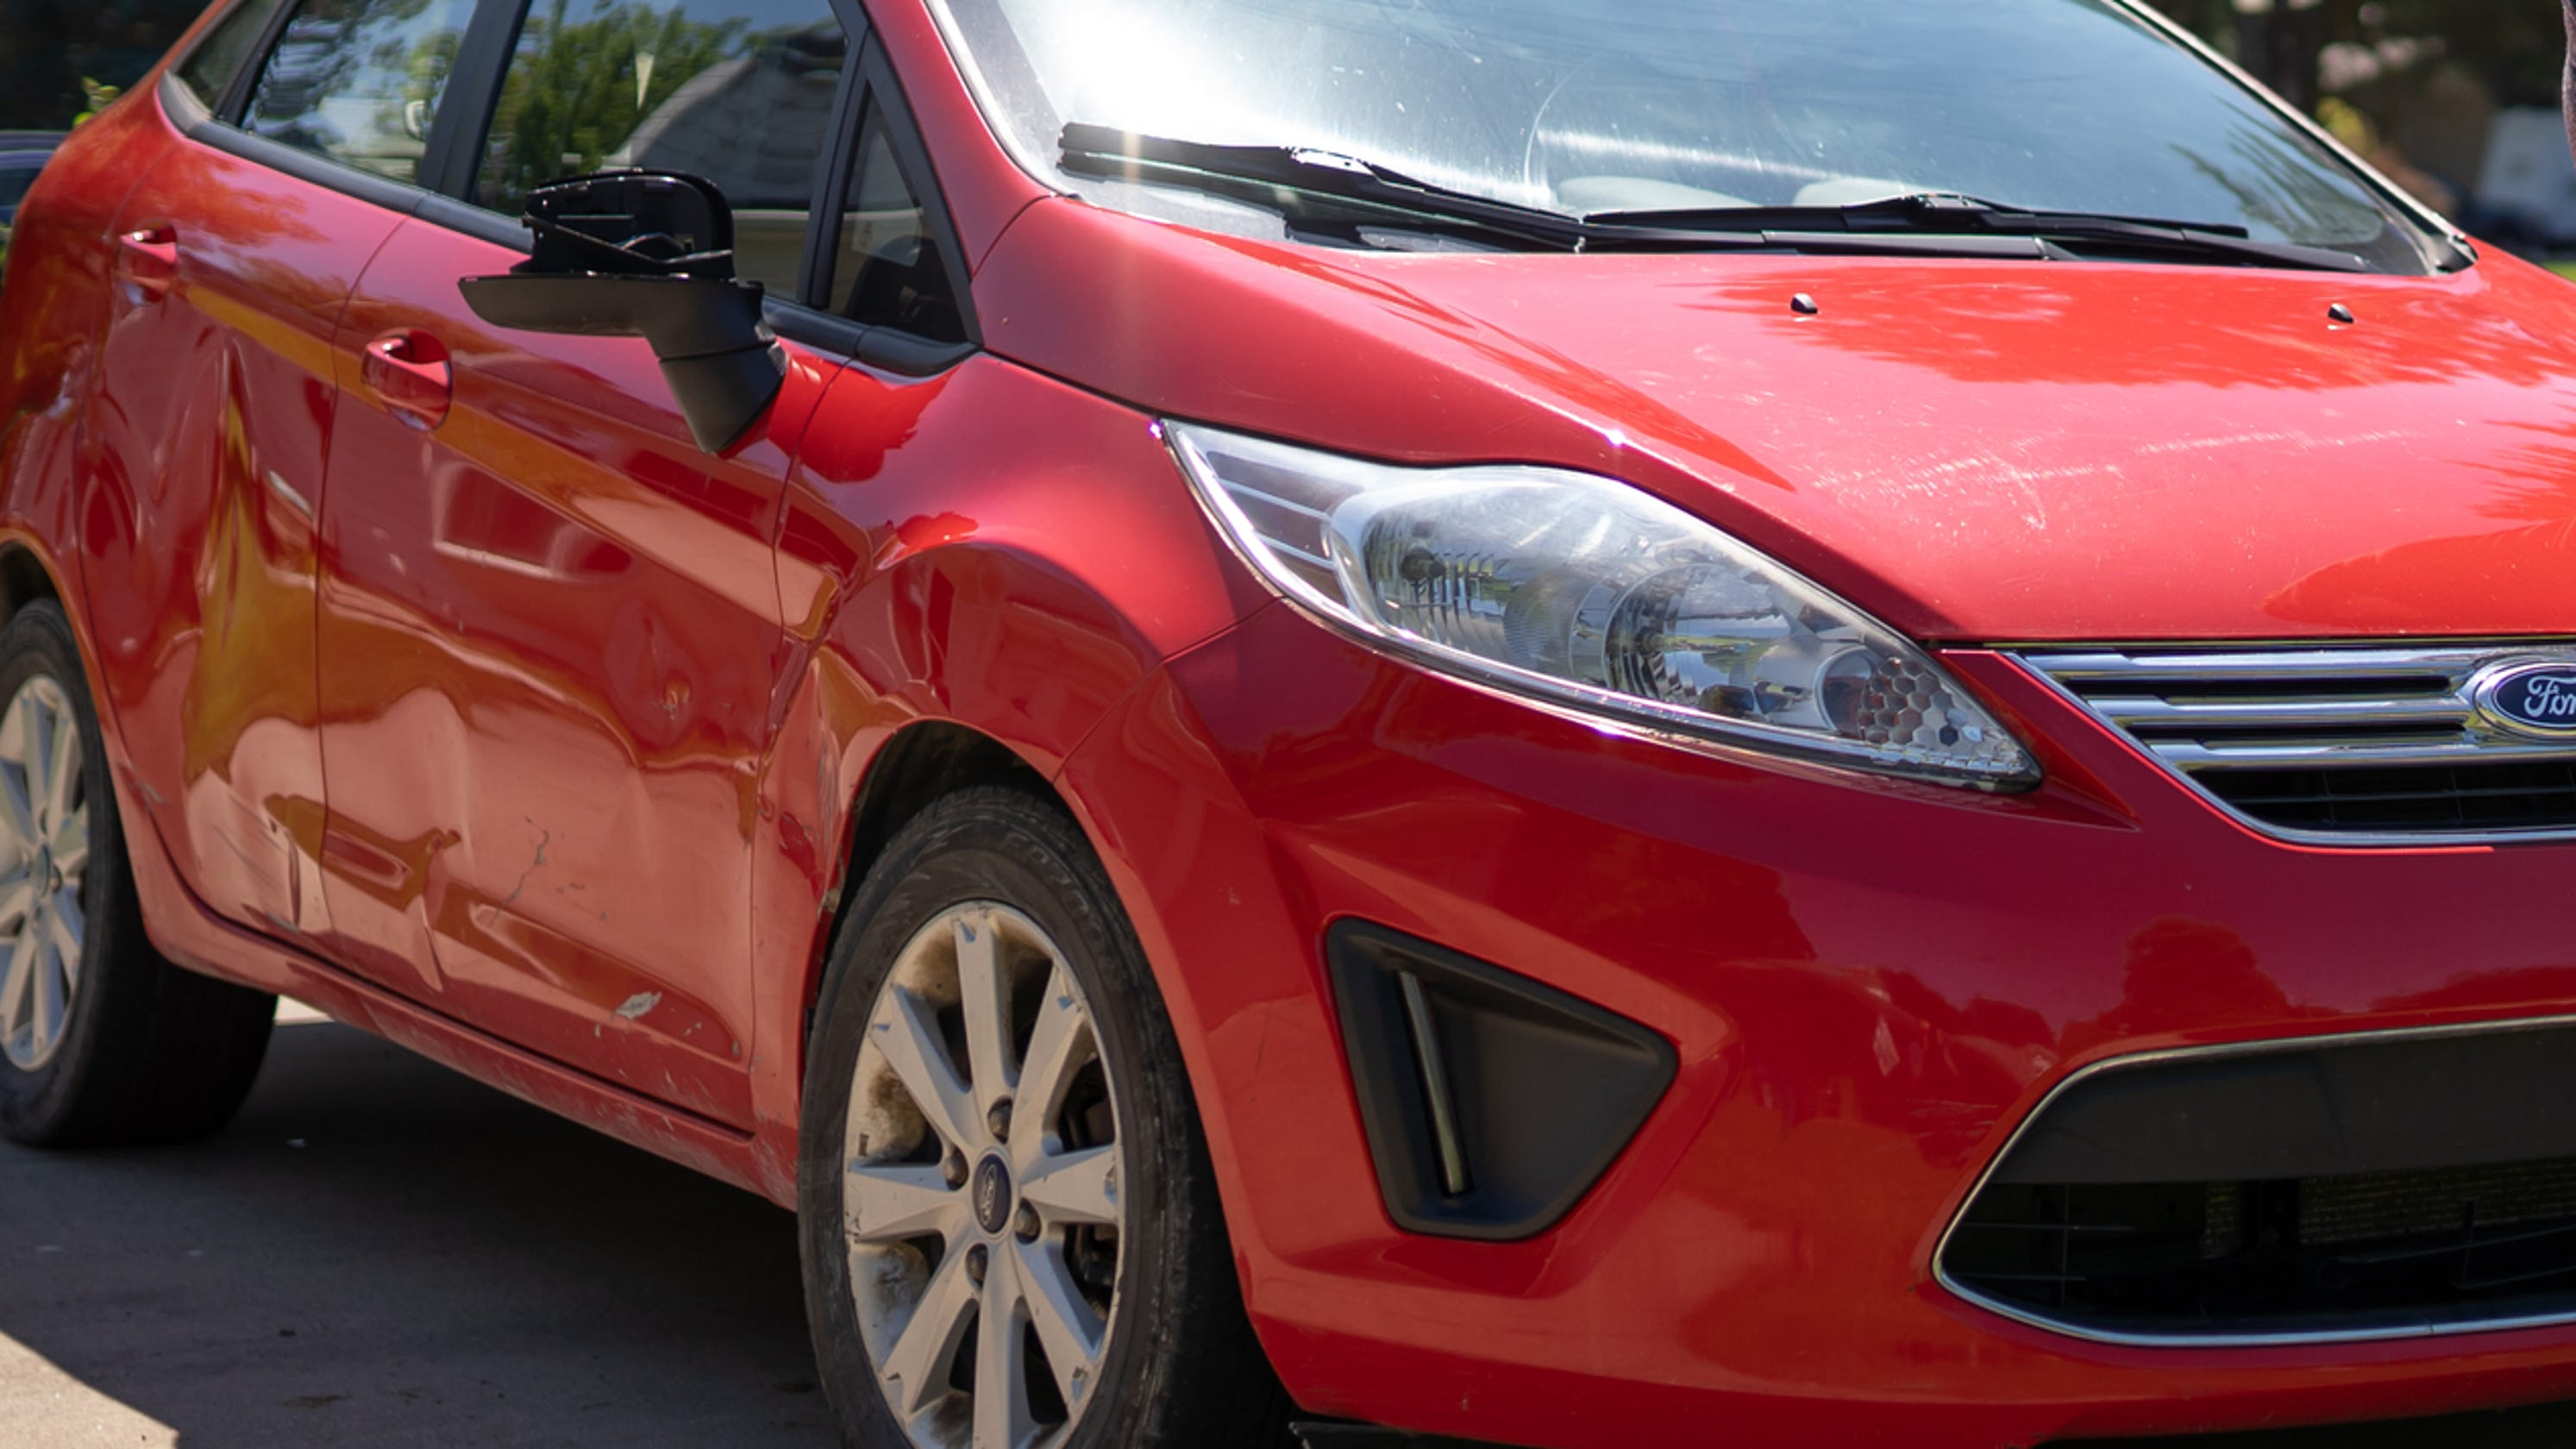 Ford Focus, Fiesta owners with transmission issues still frustrated